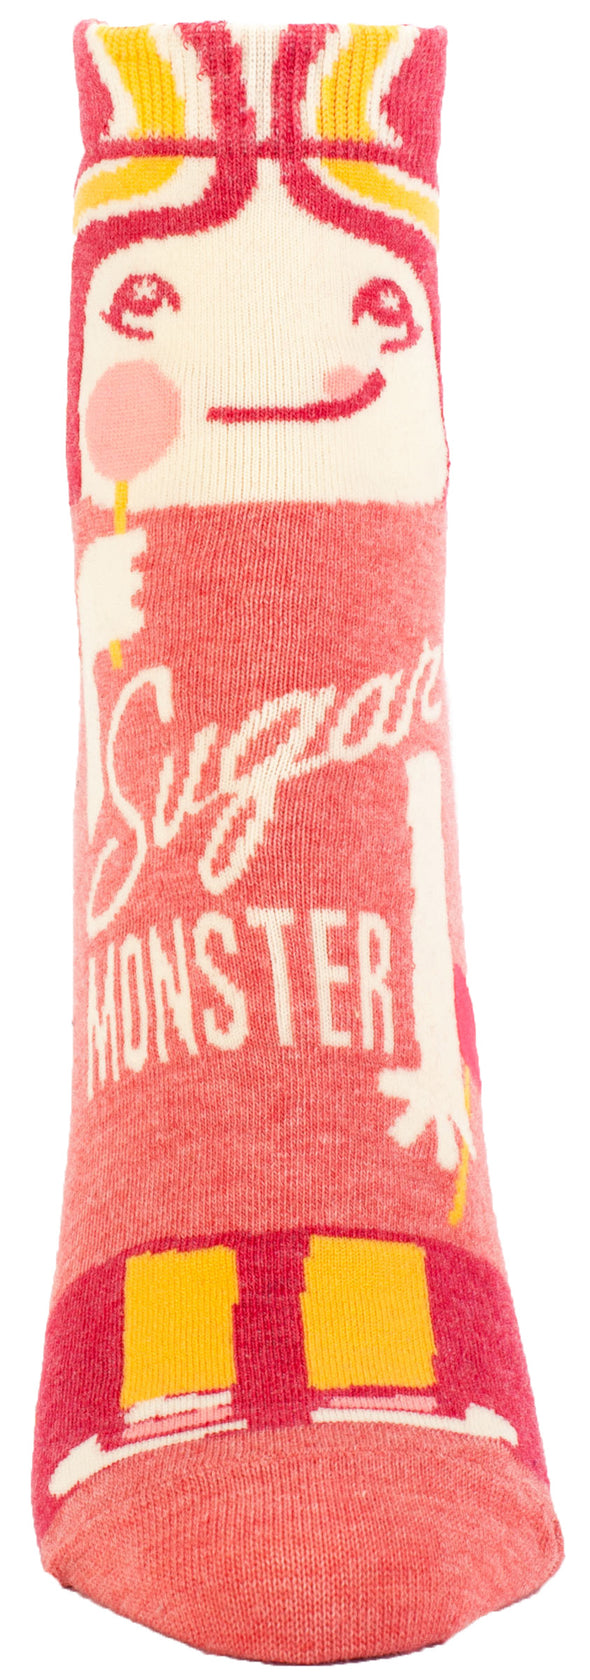 Blue Q Womens SW608 Cotton Ankle Fashion Socks, Sugar Monster, One Size